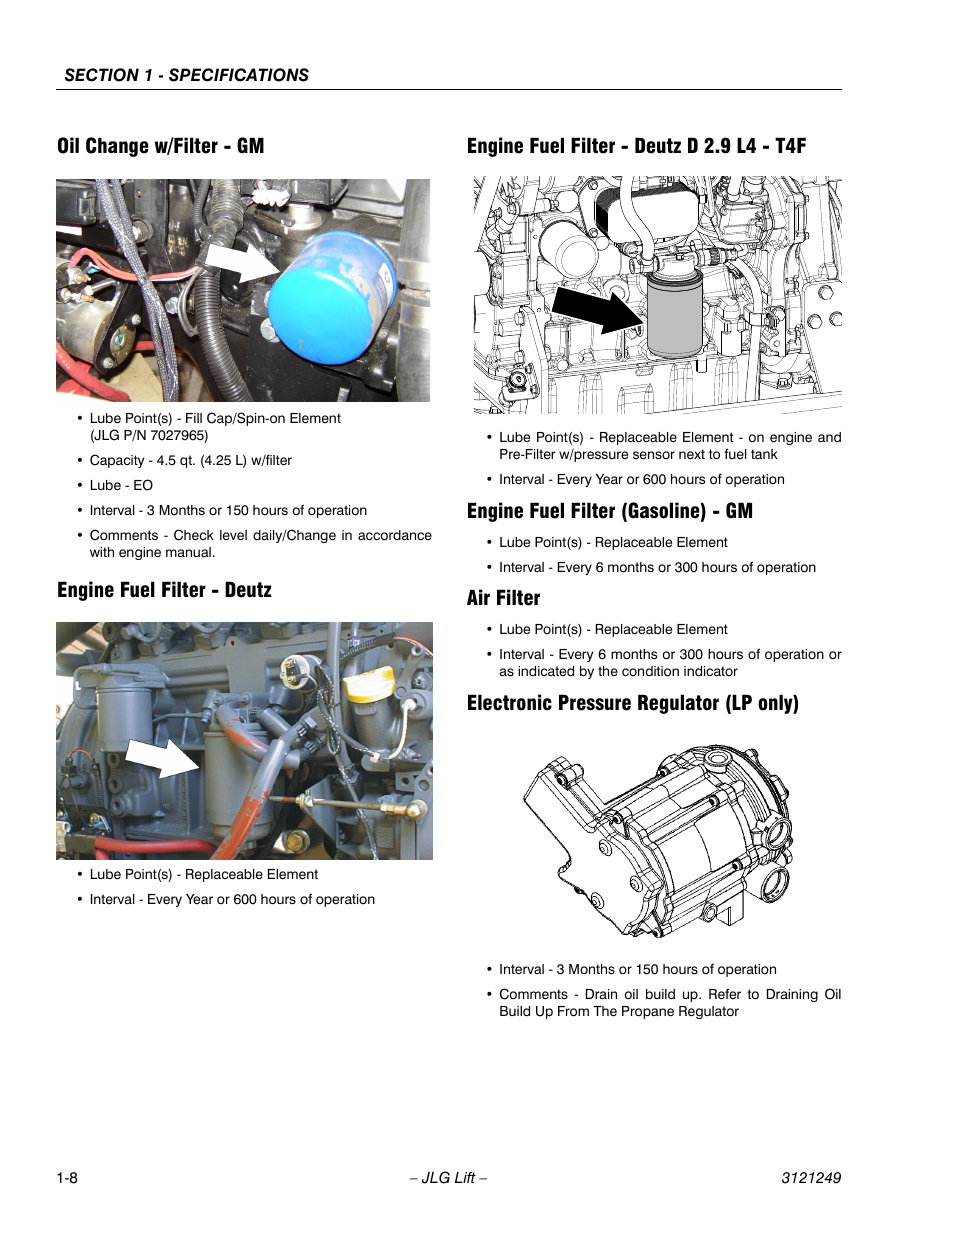 Oil change w/filter - gm, Engine fuel filter - deutz, Engine fuel filter -  deutz d 2.9 l4 - t4f | JLG 4394RT Service Manual User Manual | Page 18 / 268